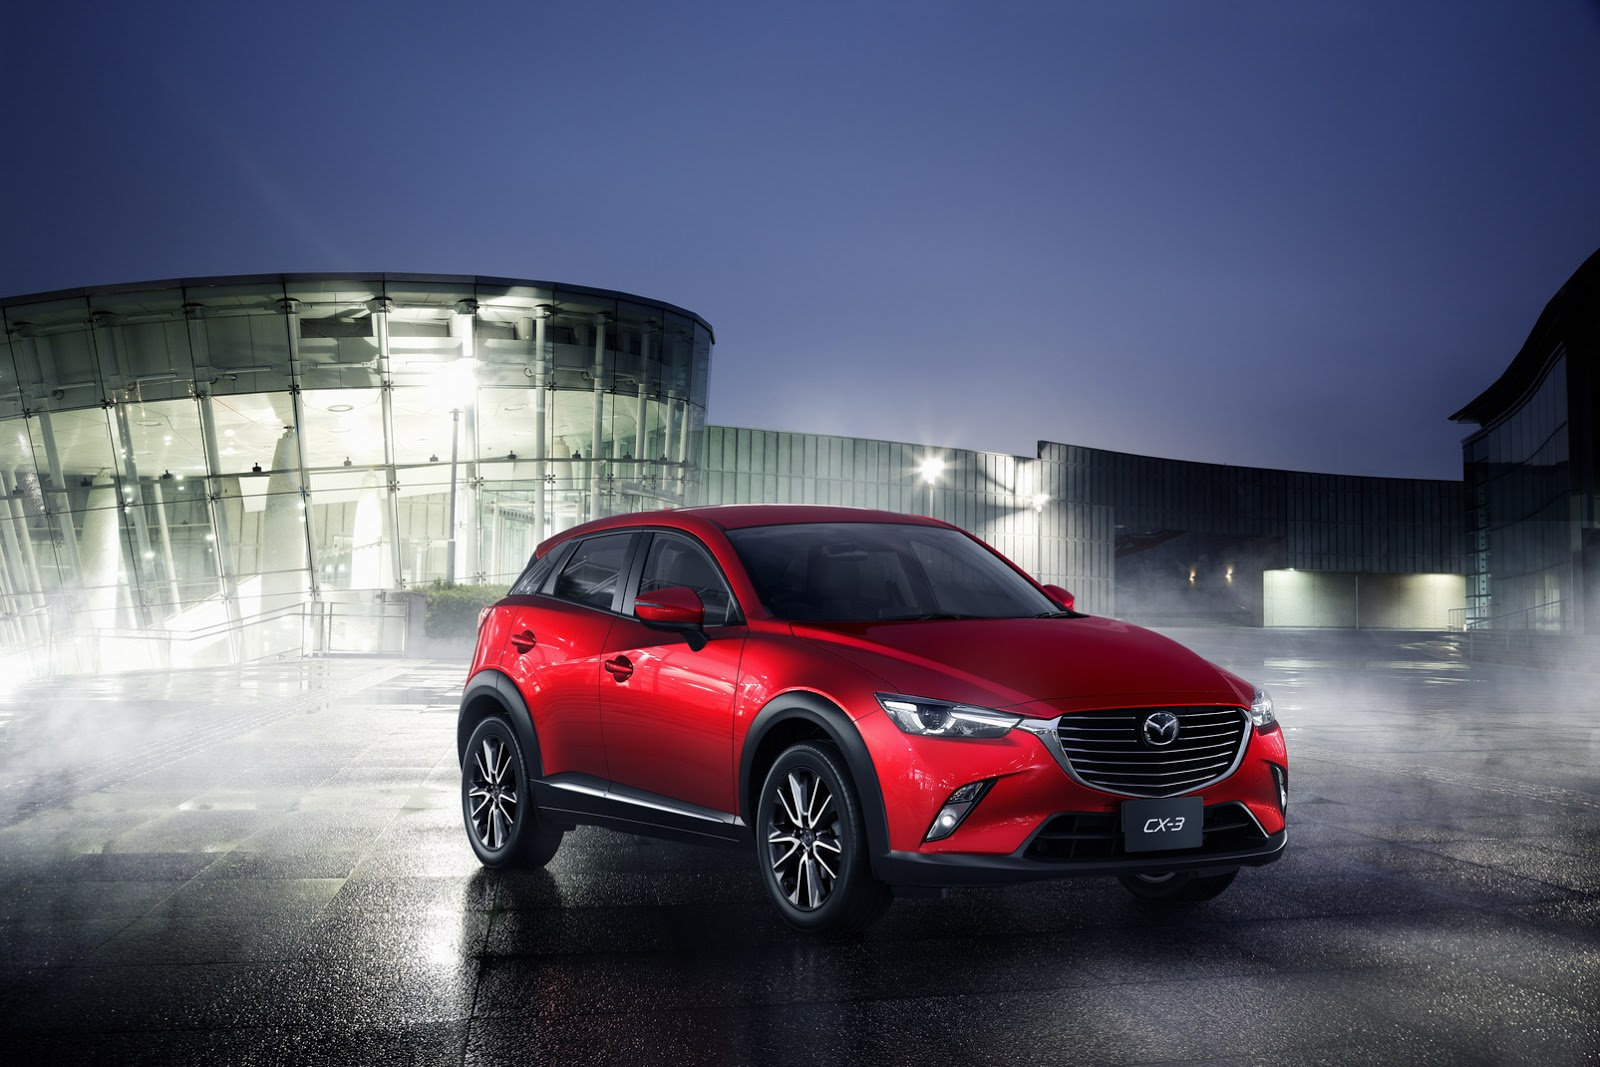 mazda-cx3-2017-us-pricing-4